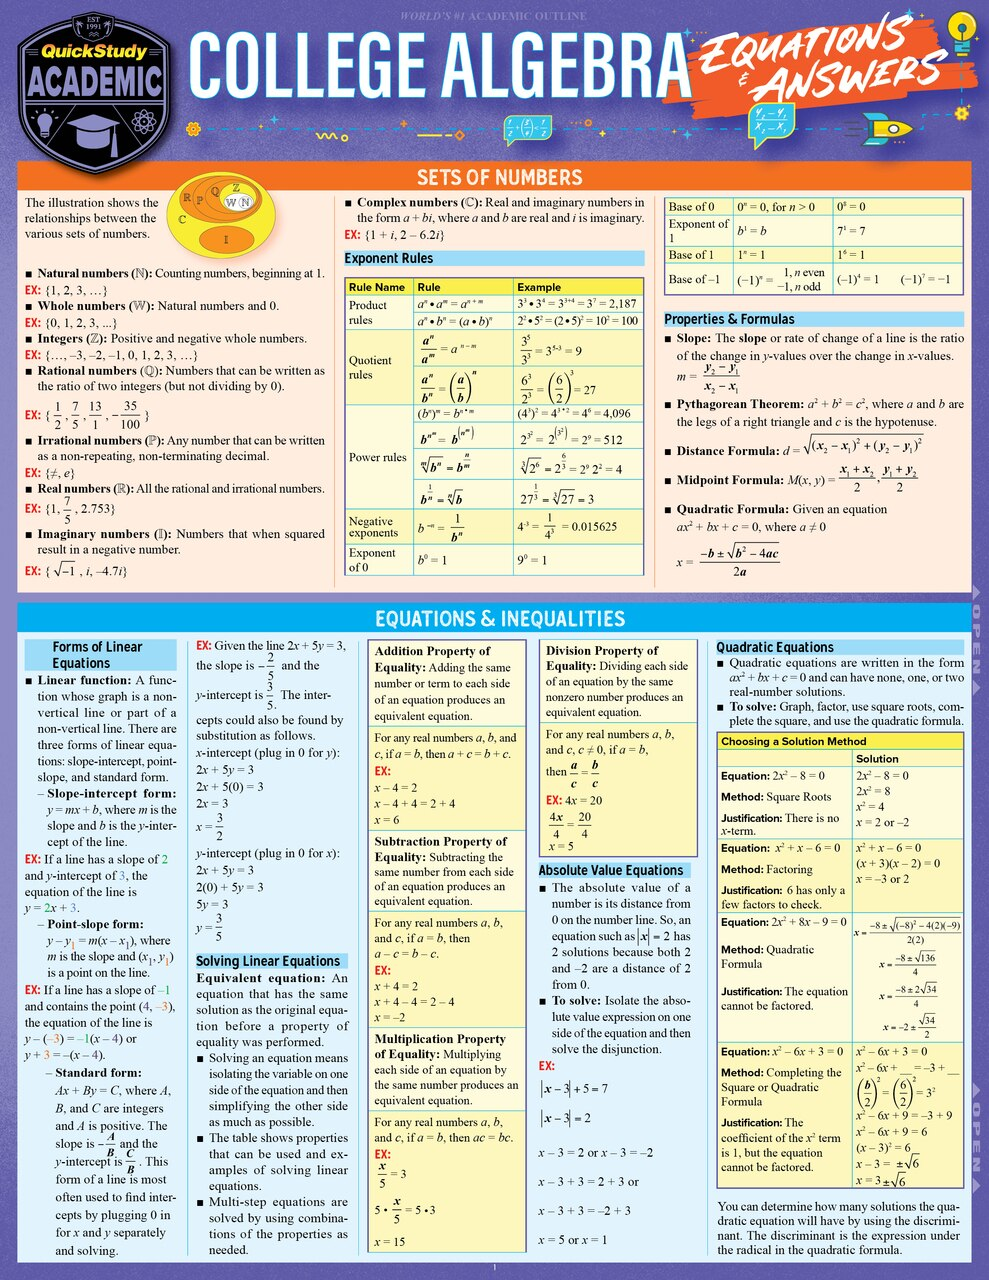 Quick Study QuickStudy College Algebra Equations Answers Laminated Study Guide BarCharts Publishing Cover Image